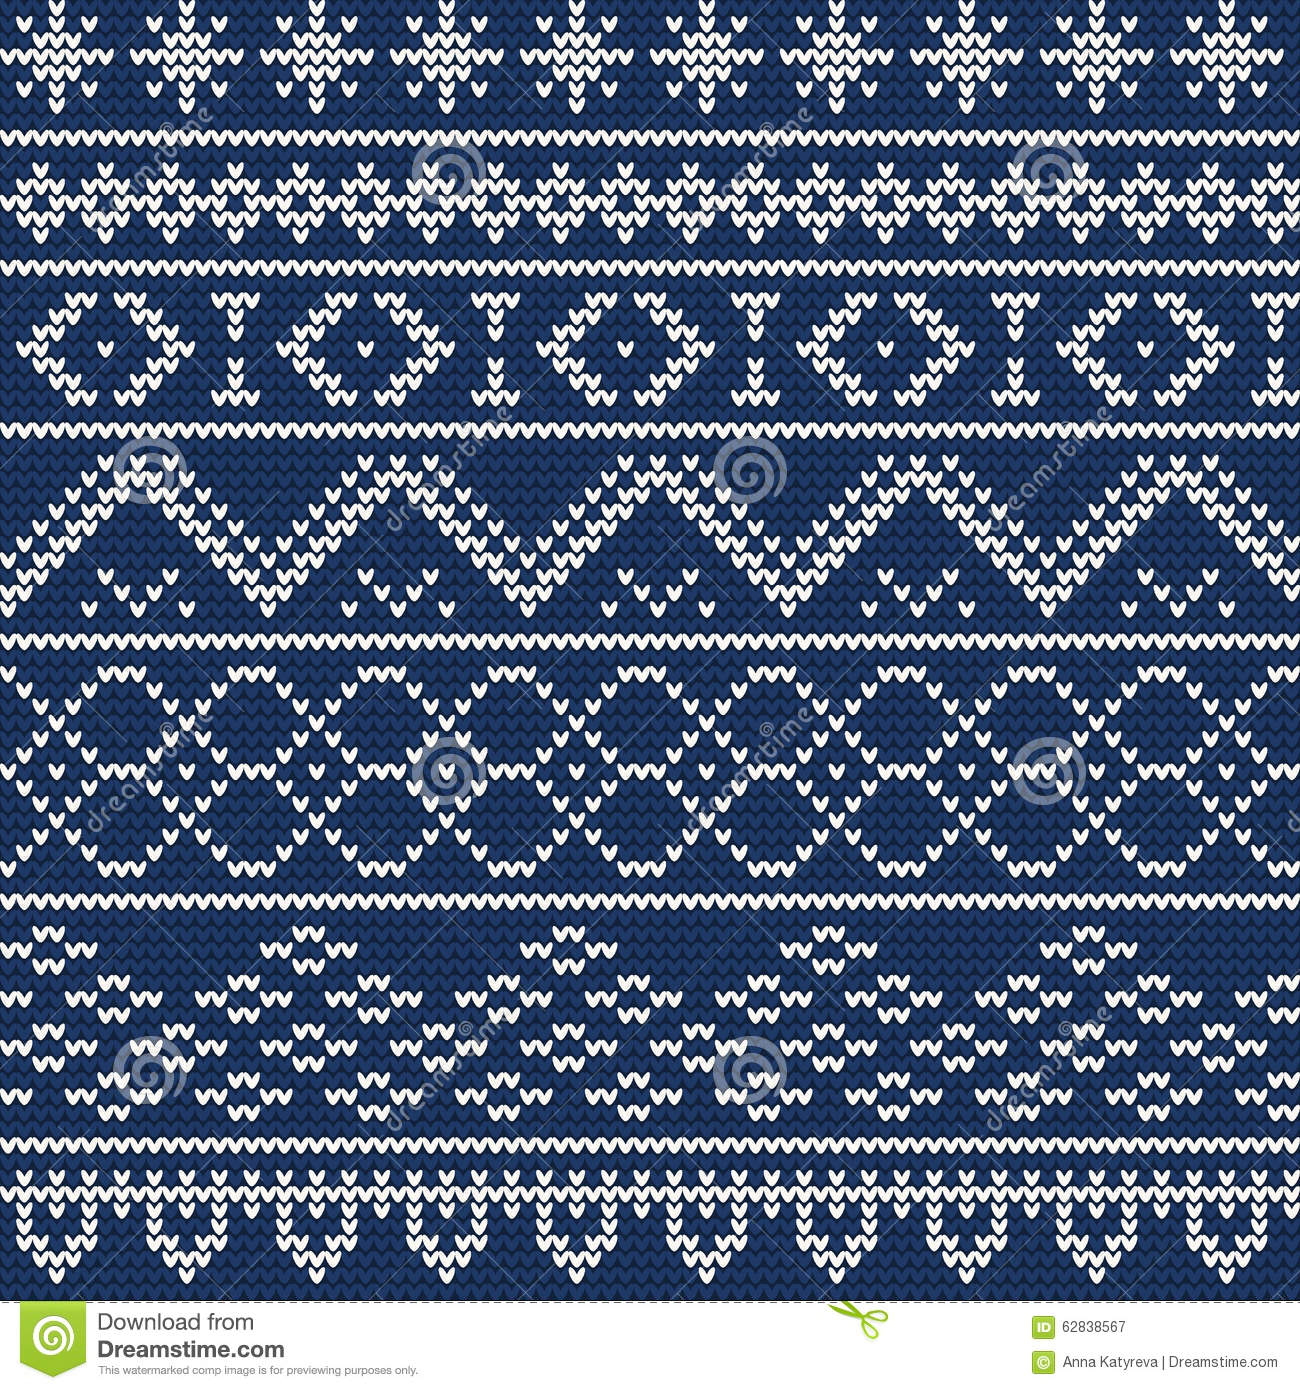 8d8910b9d83de Ugly sweater Background 1 stock vector. Illustration of repeat ...